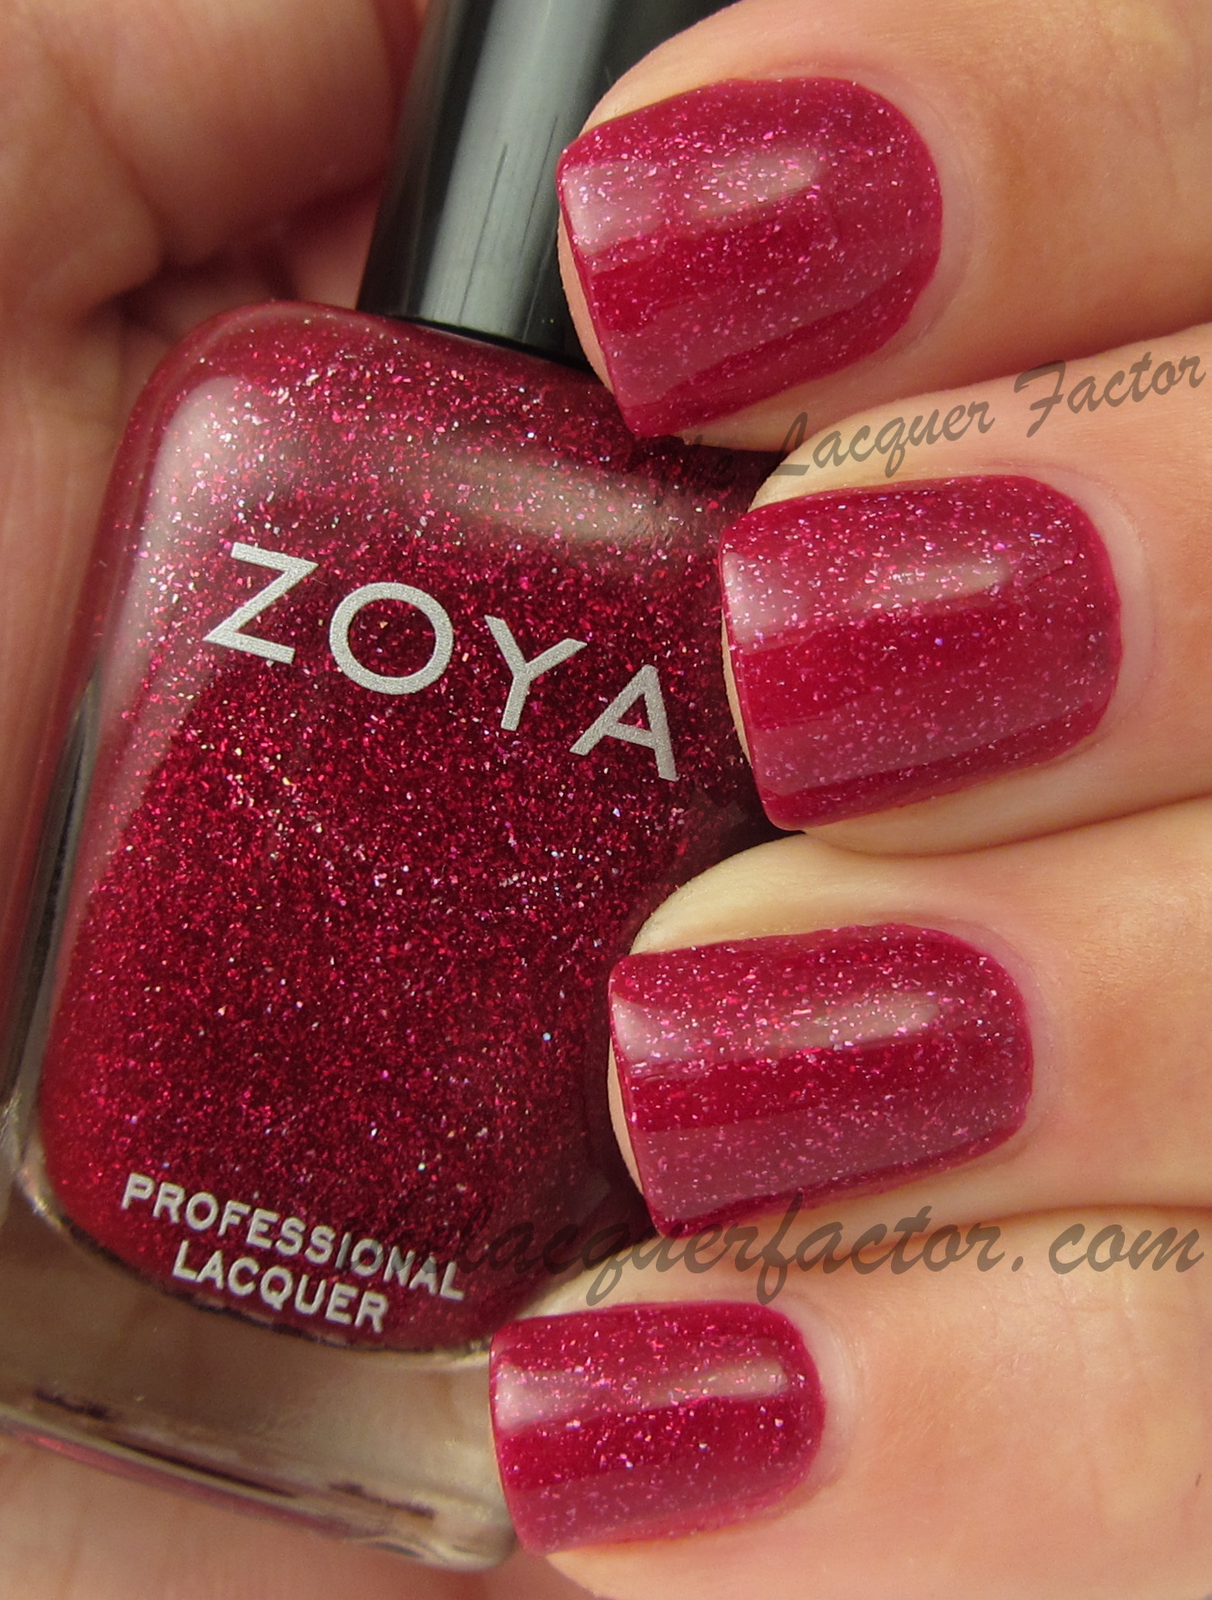 Zoya Nail Polish Blaze | The Lacquer Factor Blog | Pinterest | Zoya ...